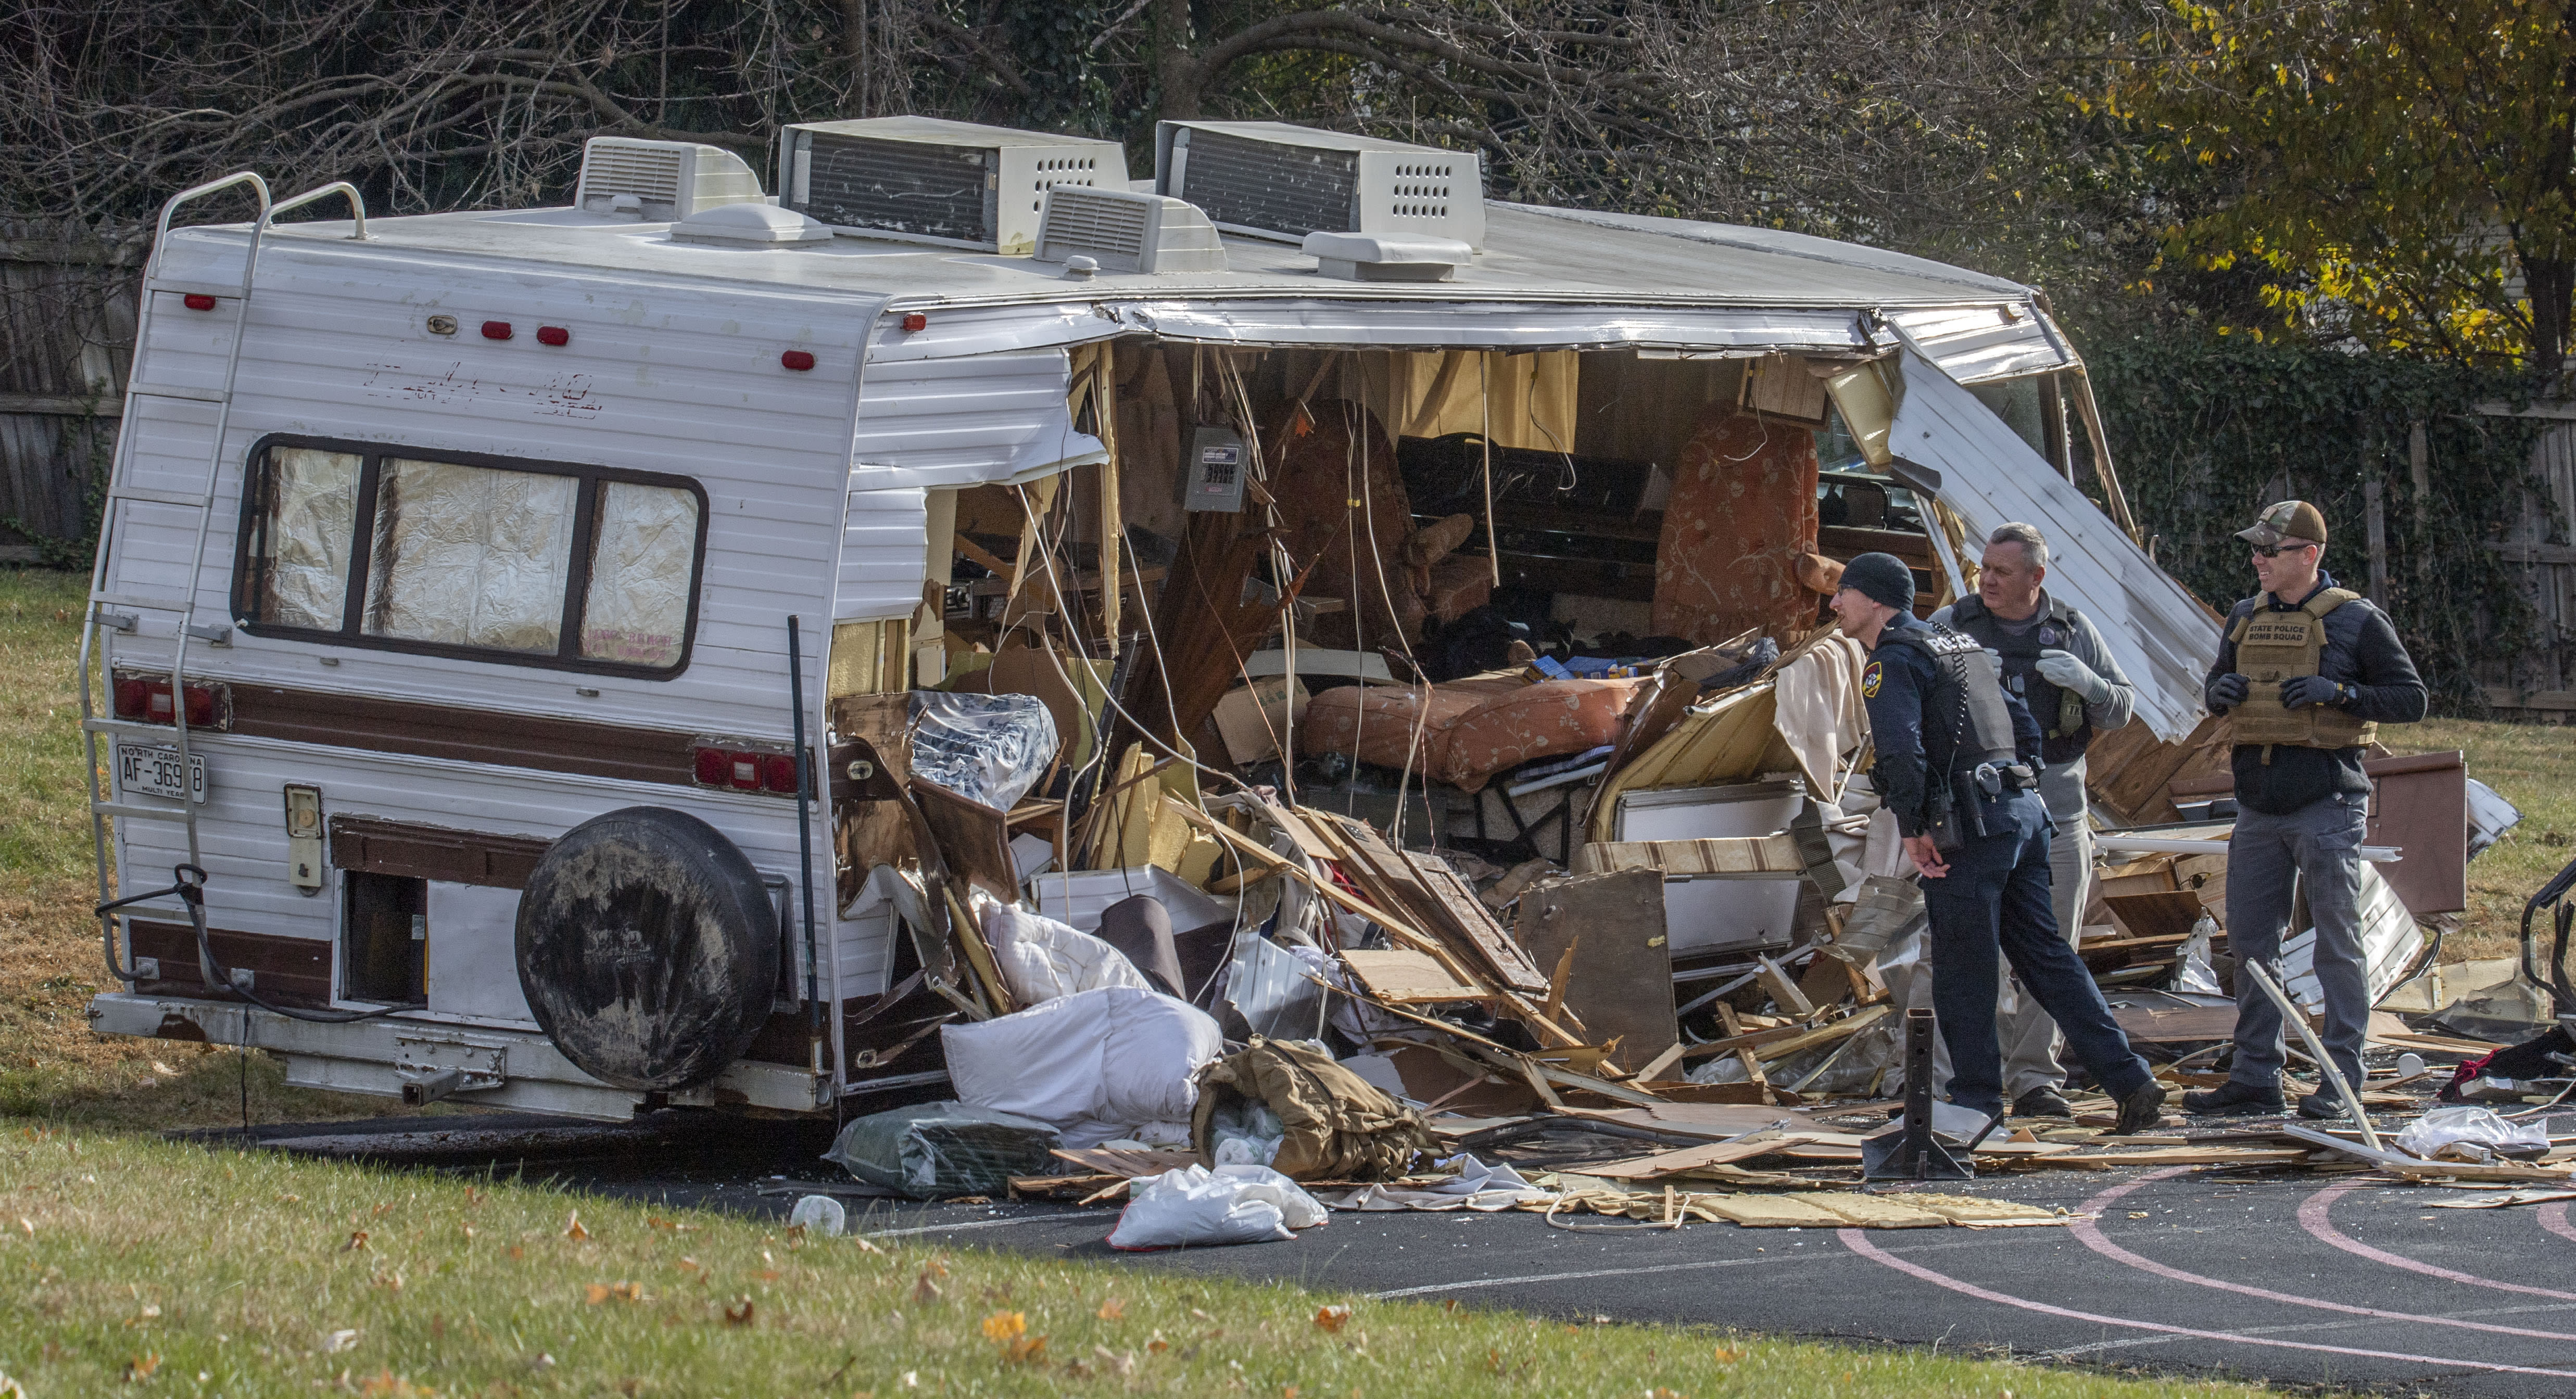 Police examine a stolen RV after ramming it multiple times with an armored vehicle while searching for a Marine deserter who is wanted for questioning in a murder case, in Roanoke, Va. (AP Photo/Don Petersen)